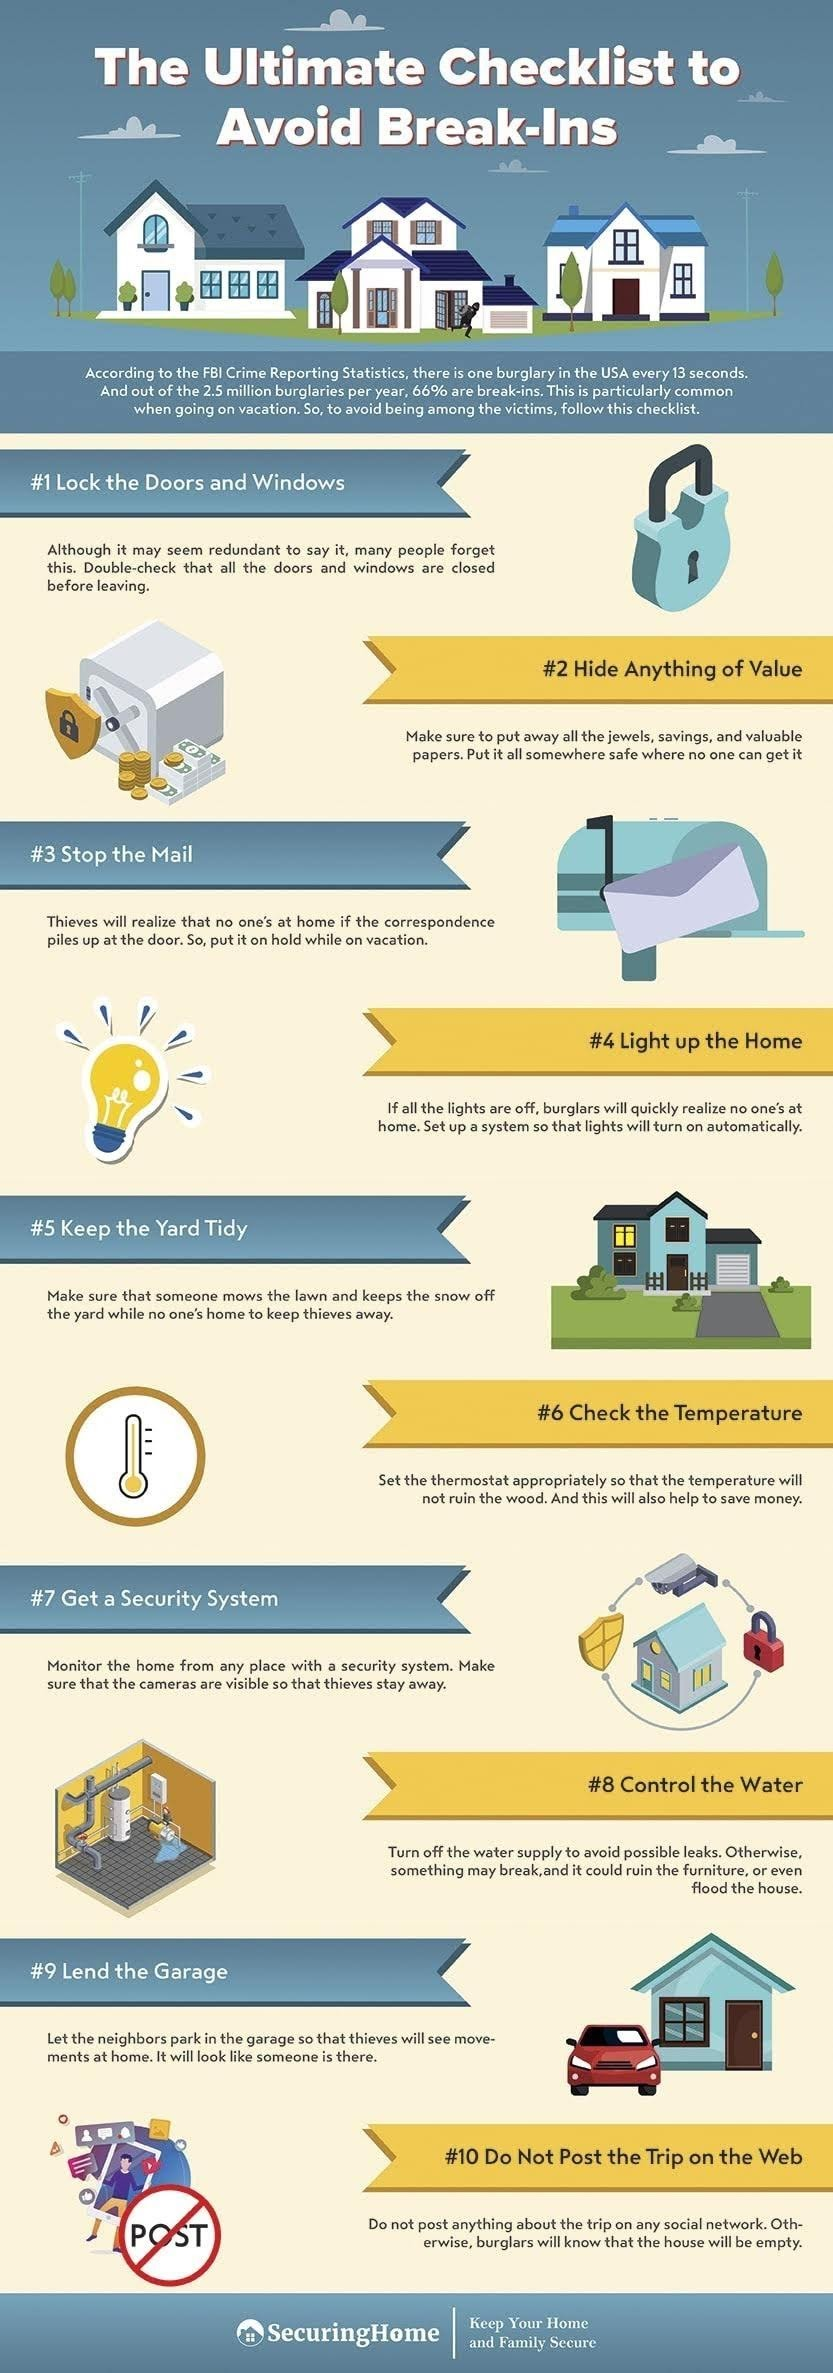 he Ultimate Checklist to Avoid Break-Ins #infographic